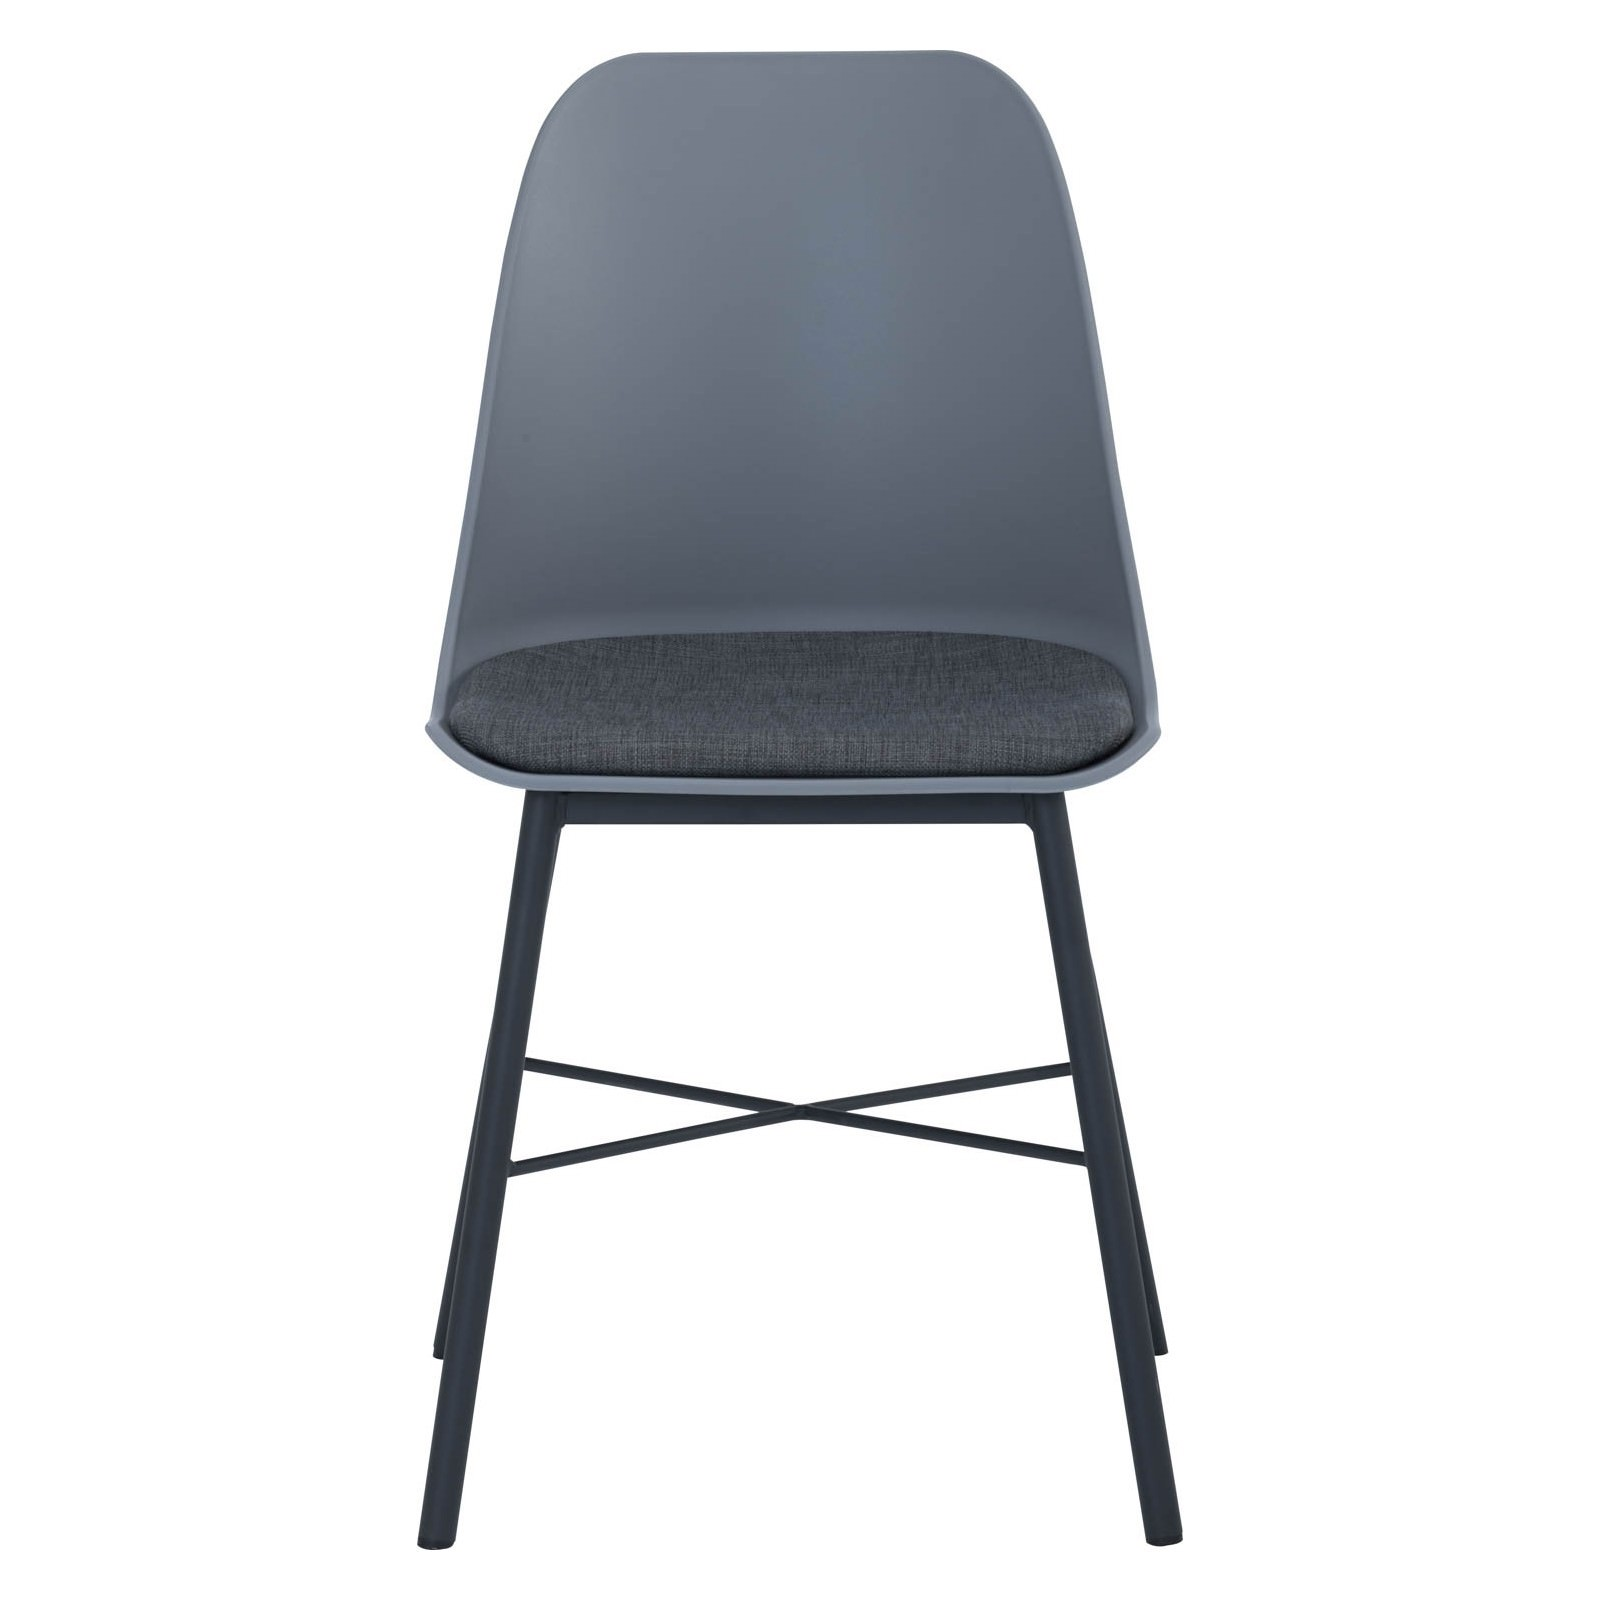 Laxmi Commercial Grade Dining Chair, Grey